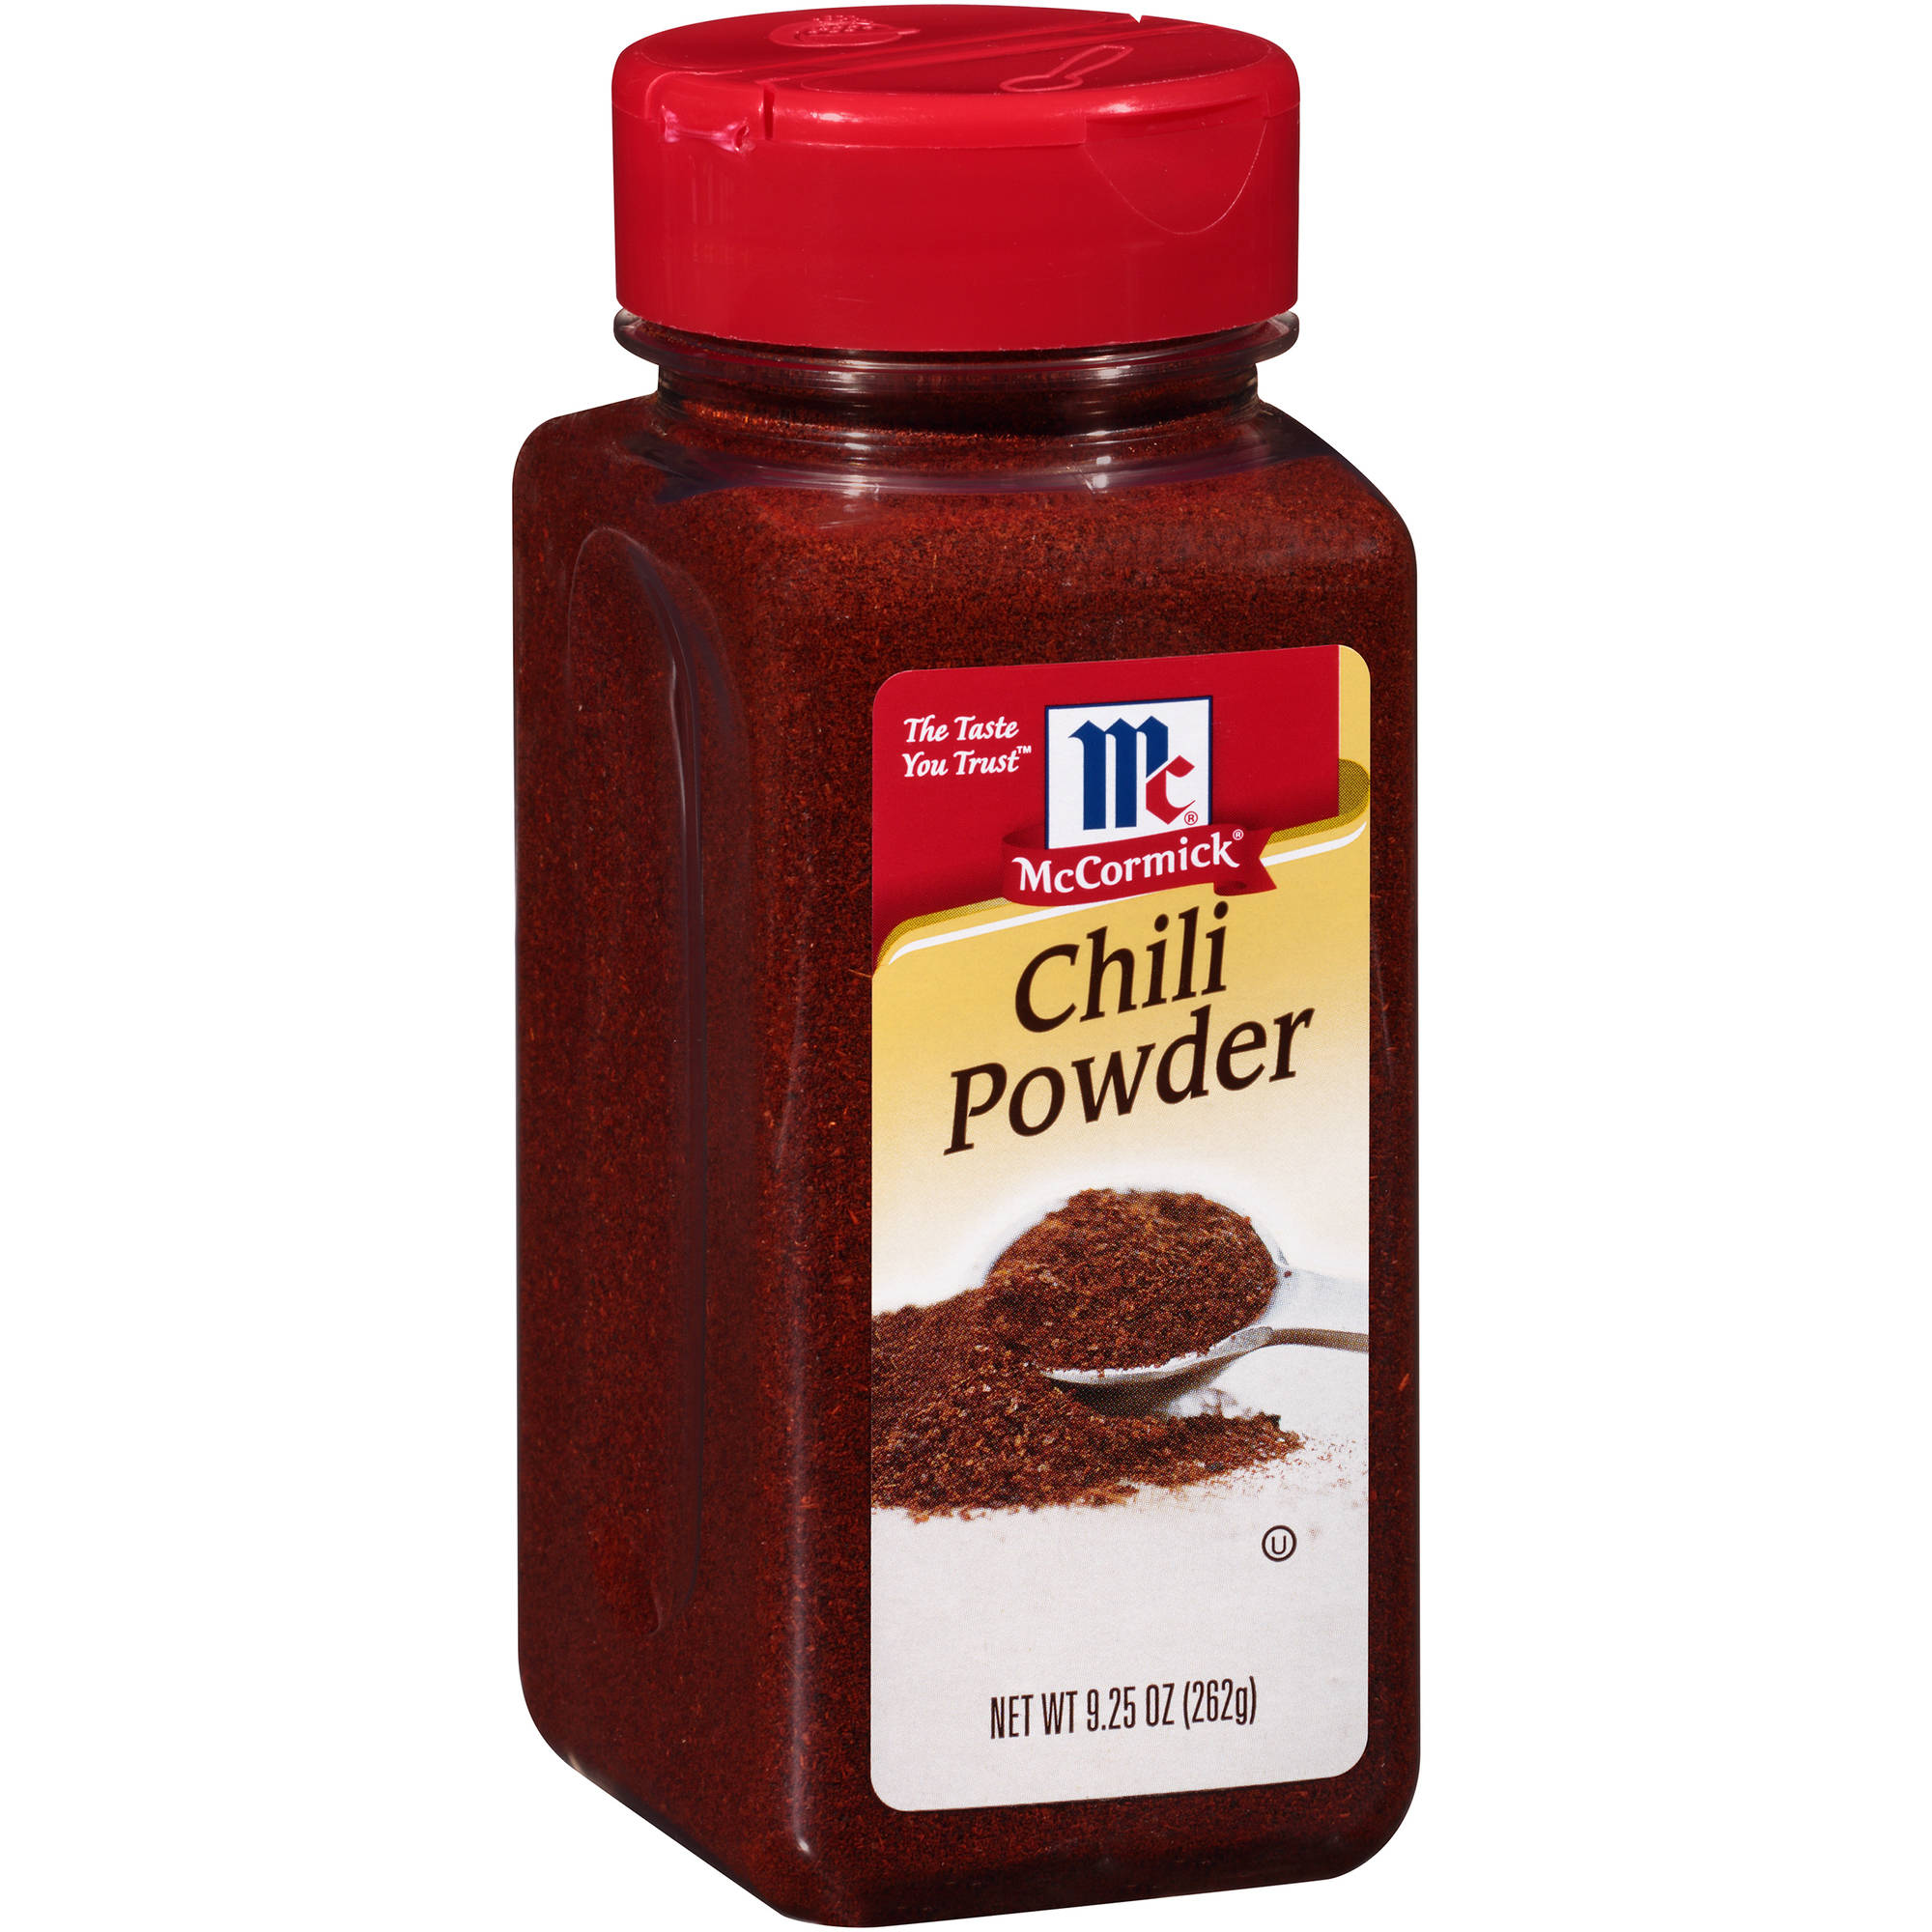 McCormick Chili Powder, 9.25 oz